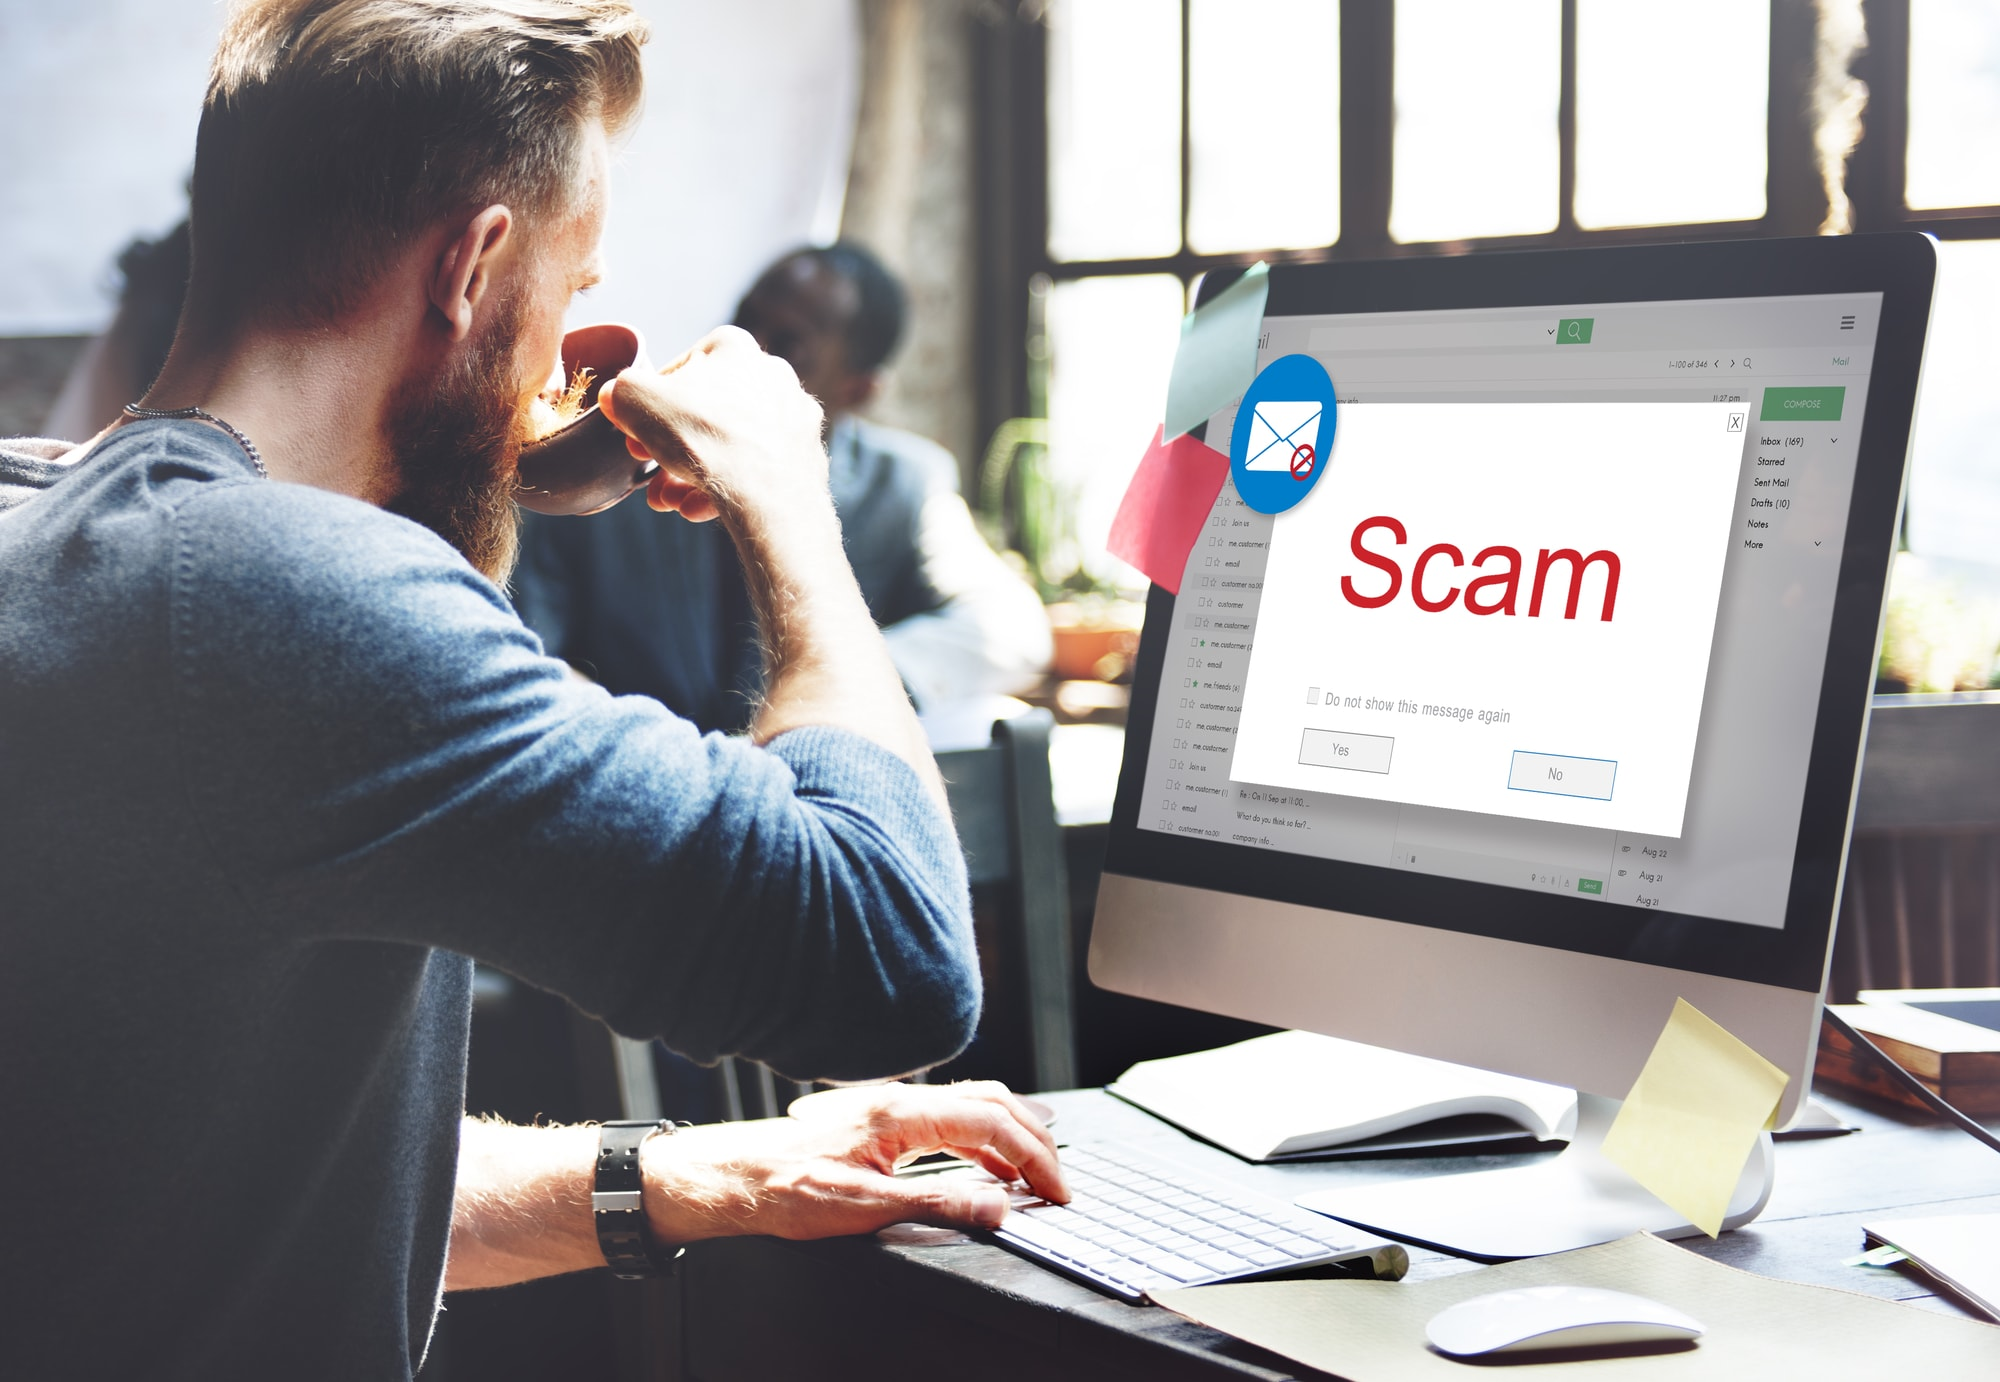 email phishing red flags scam alert-min